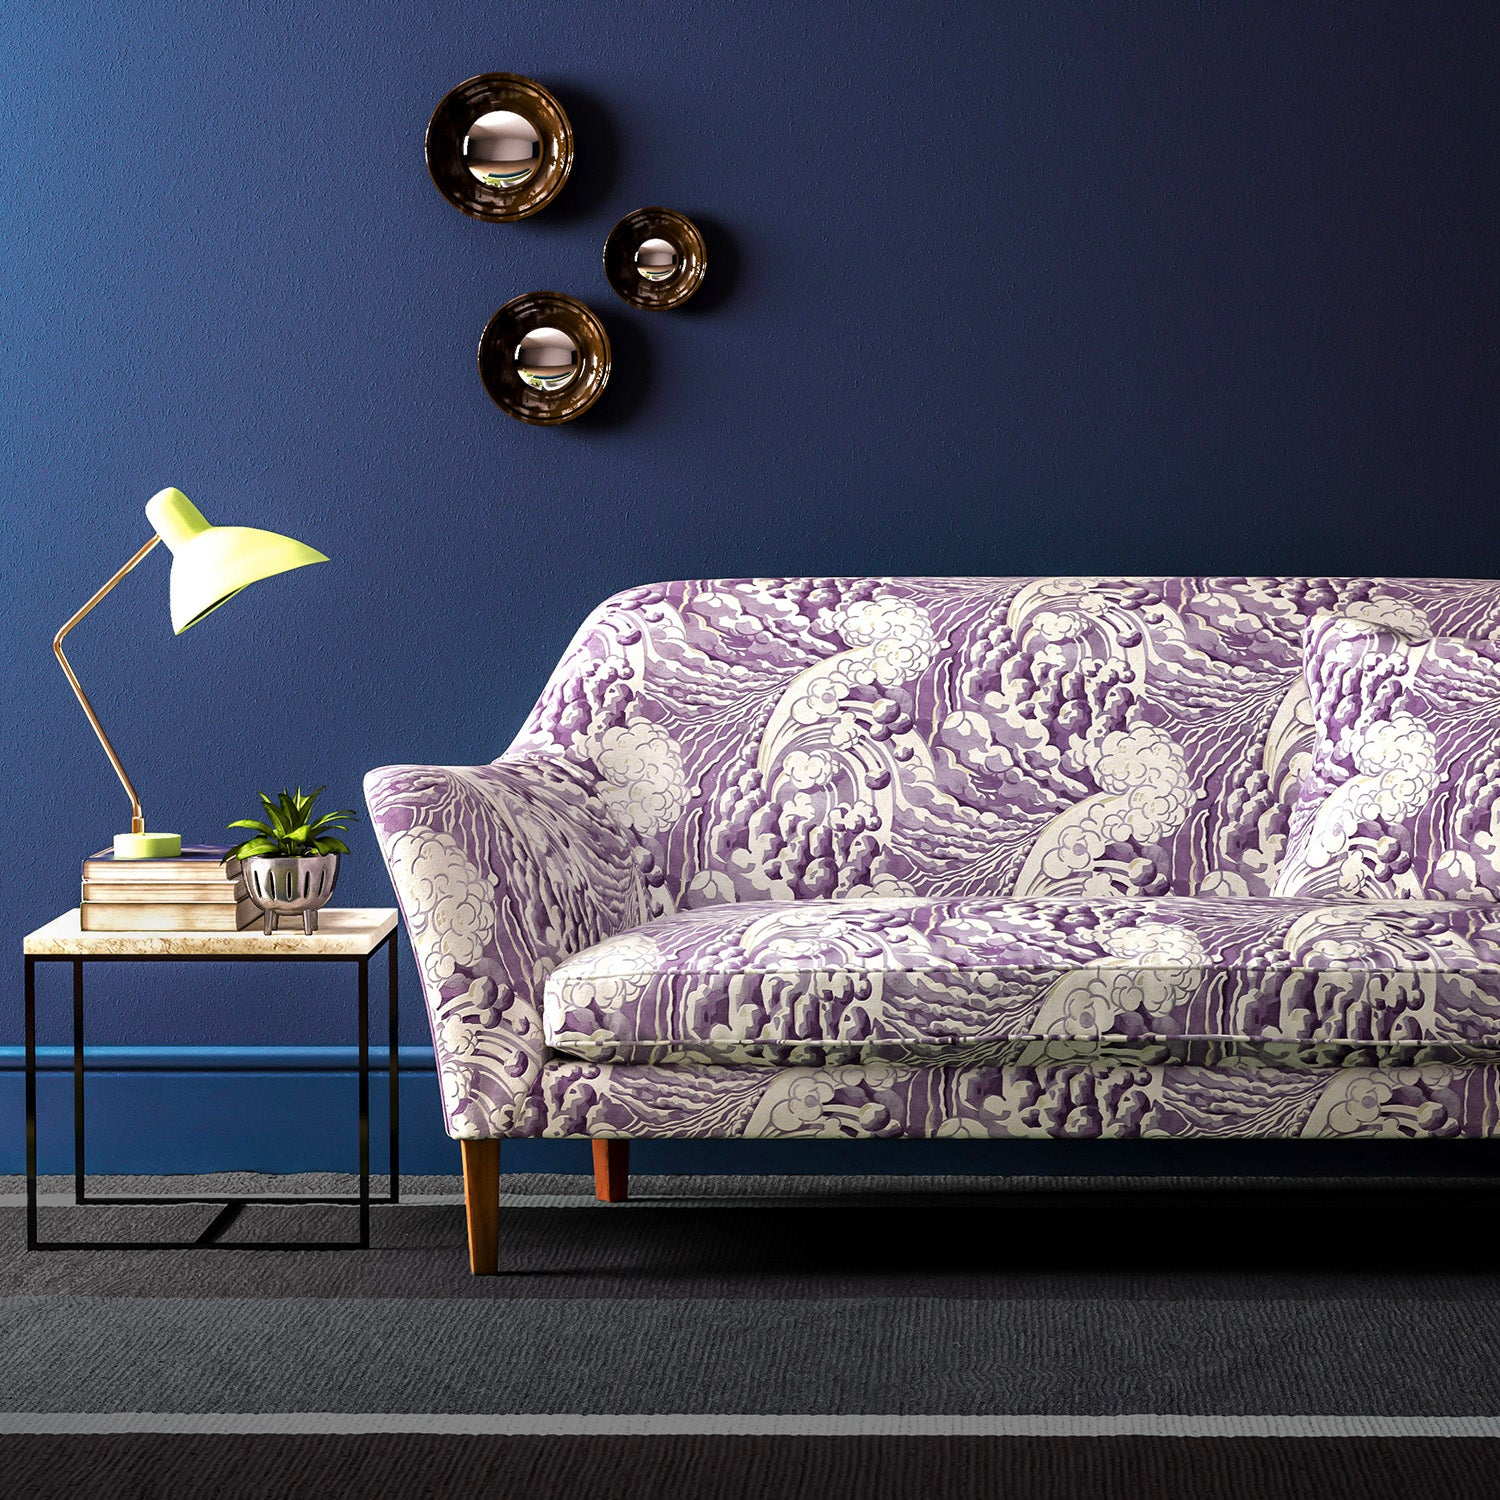 Sofa upholstered in a purple and white velvet upholstery fabric with a wave design and stain resistant finish